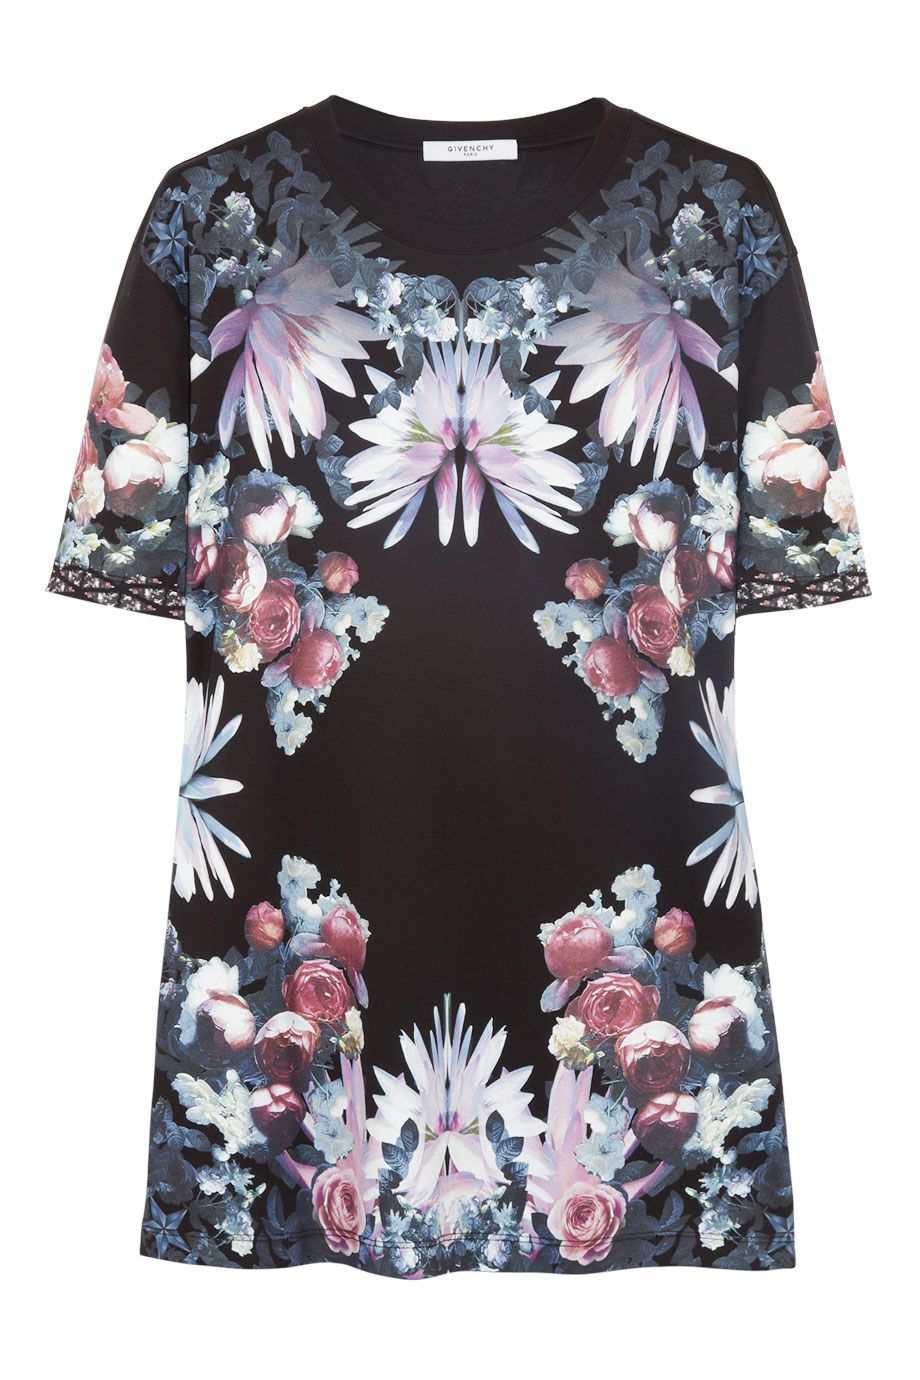 Givenchy|Floral-print cotton-jersey T-shirt